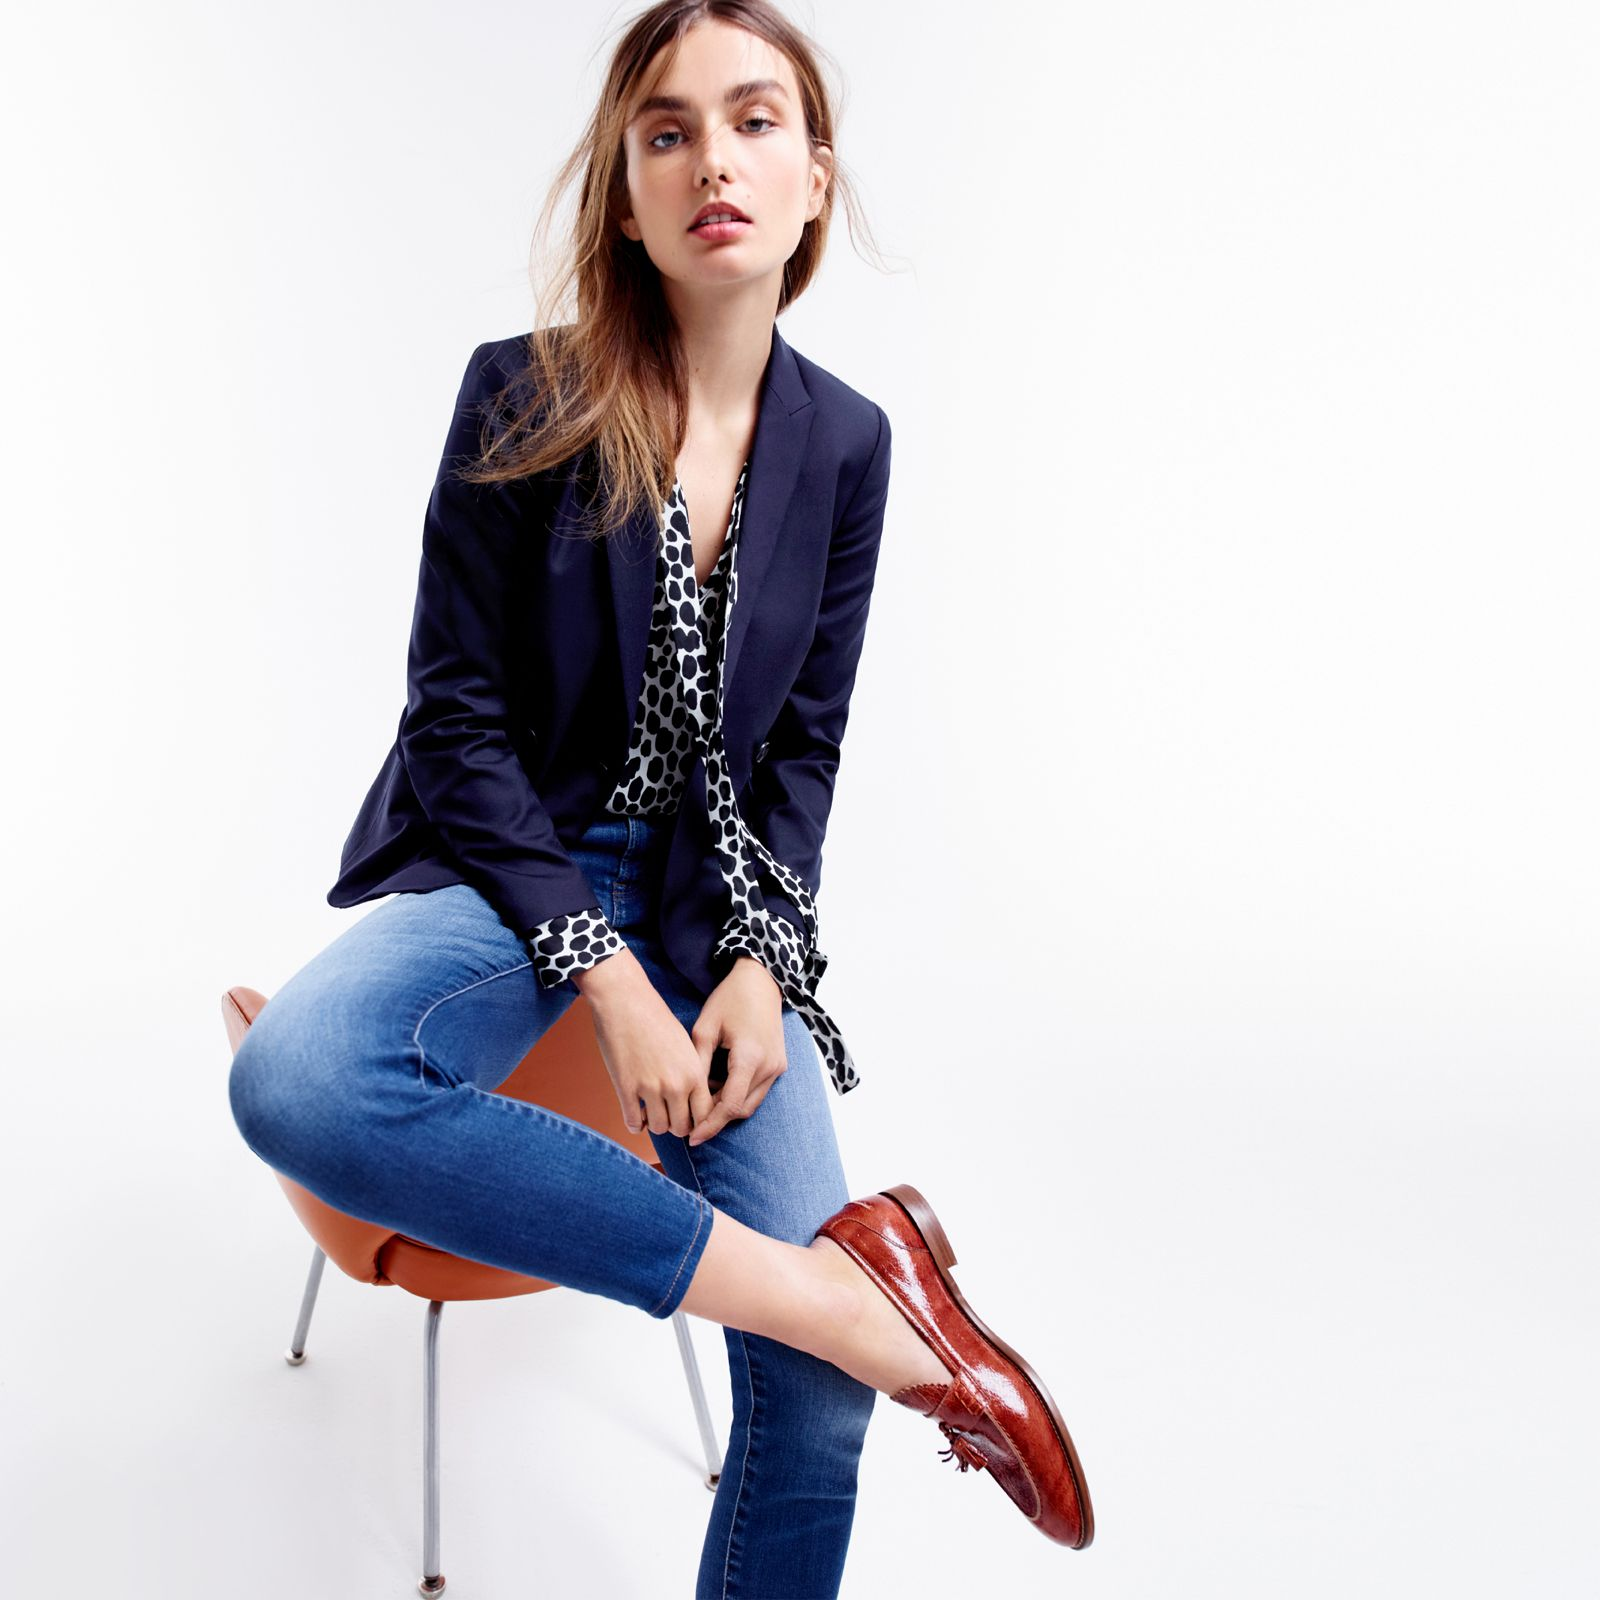 862894d8757f28 J.Crew Looks We Love: women's double-breasted blazer, Collection secretary  bow blouse in dalmatian print, Lookout high-rise crop jean in Mariner wash  and ...